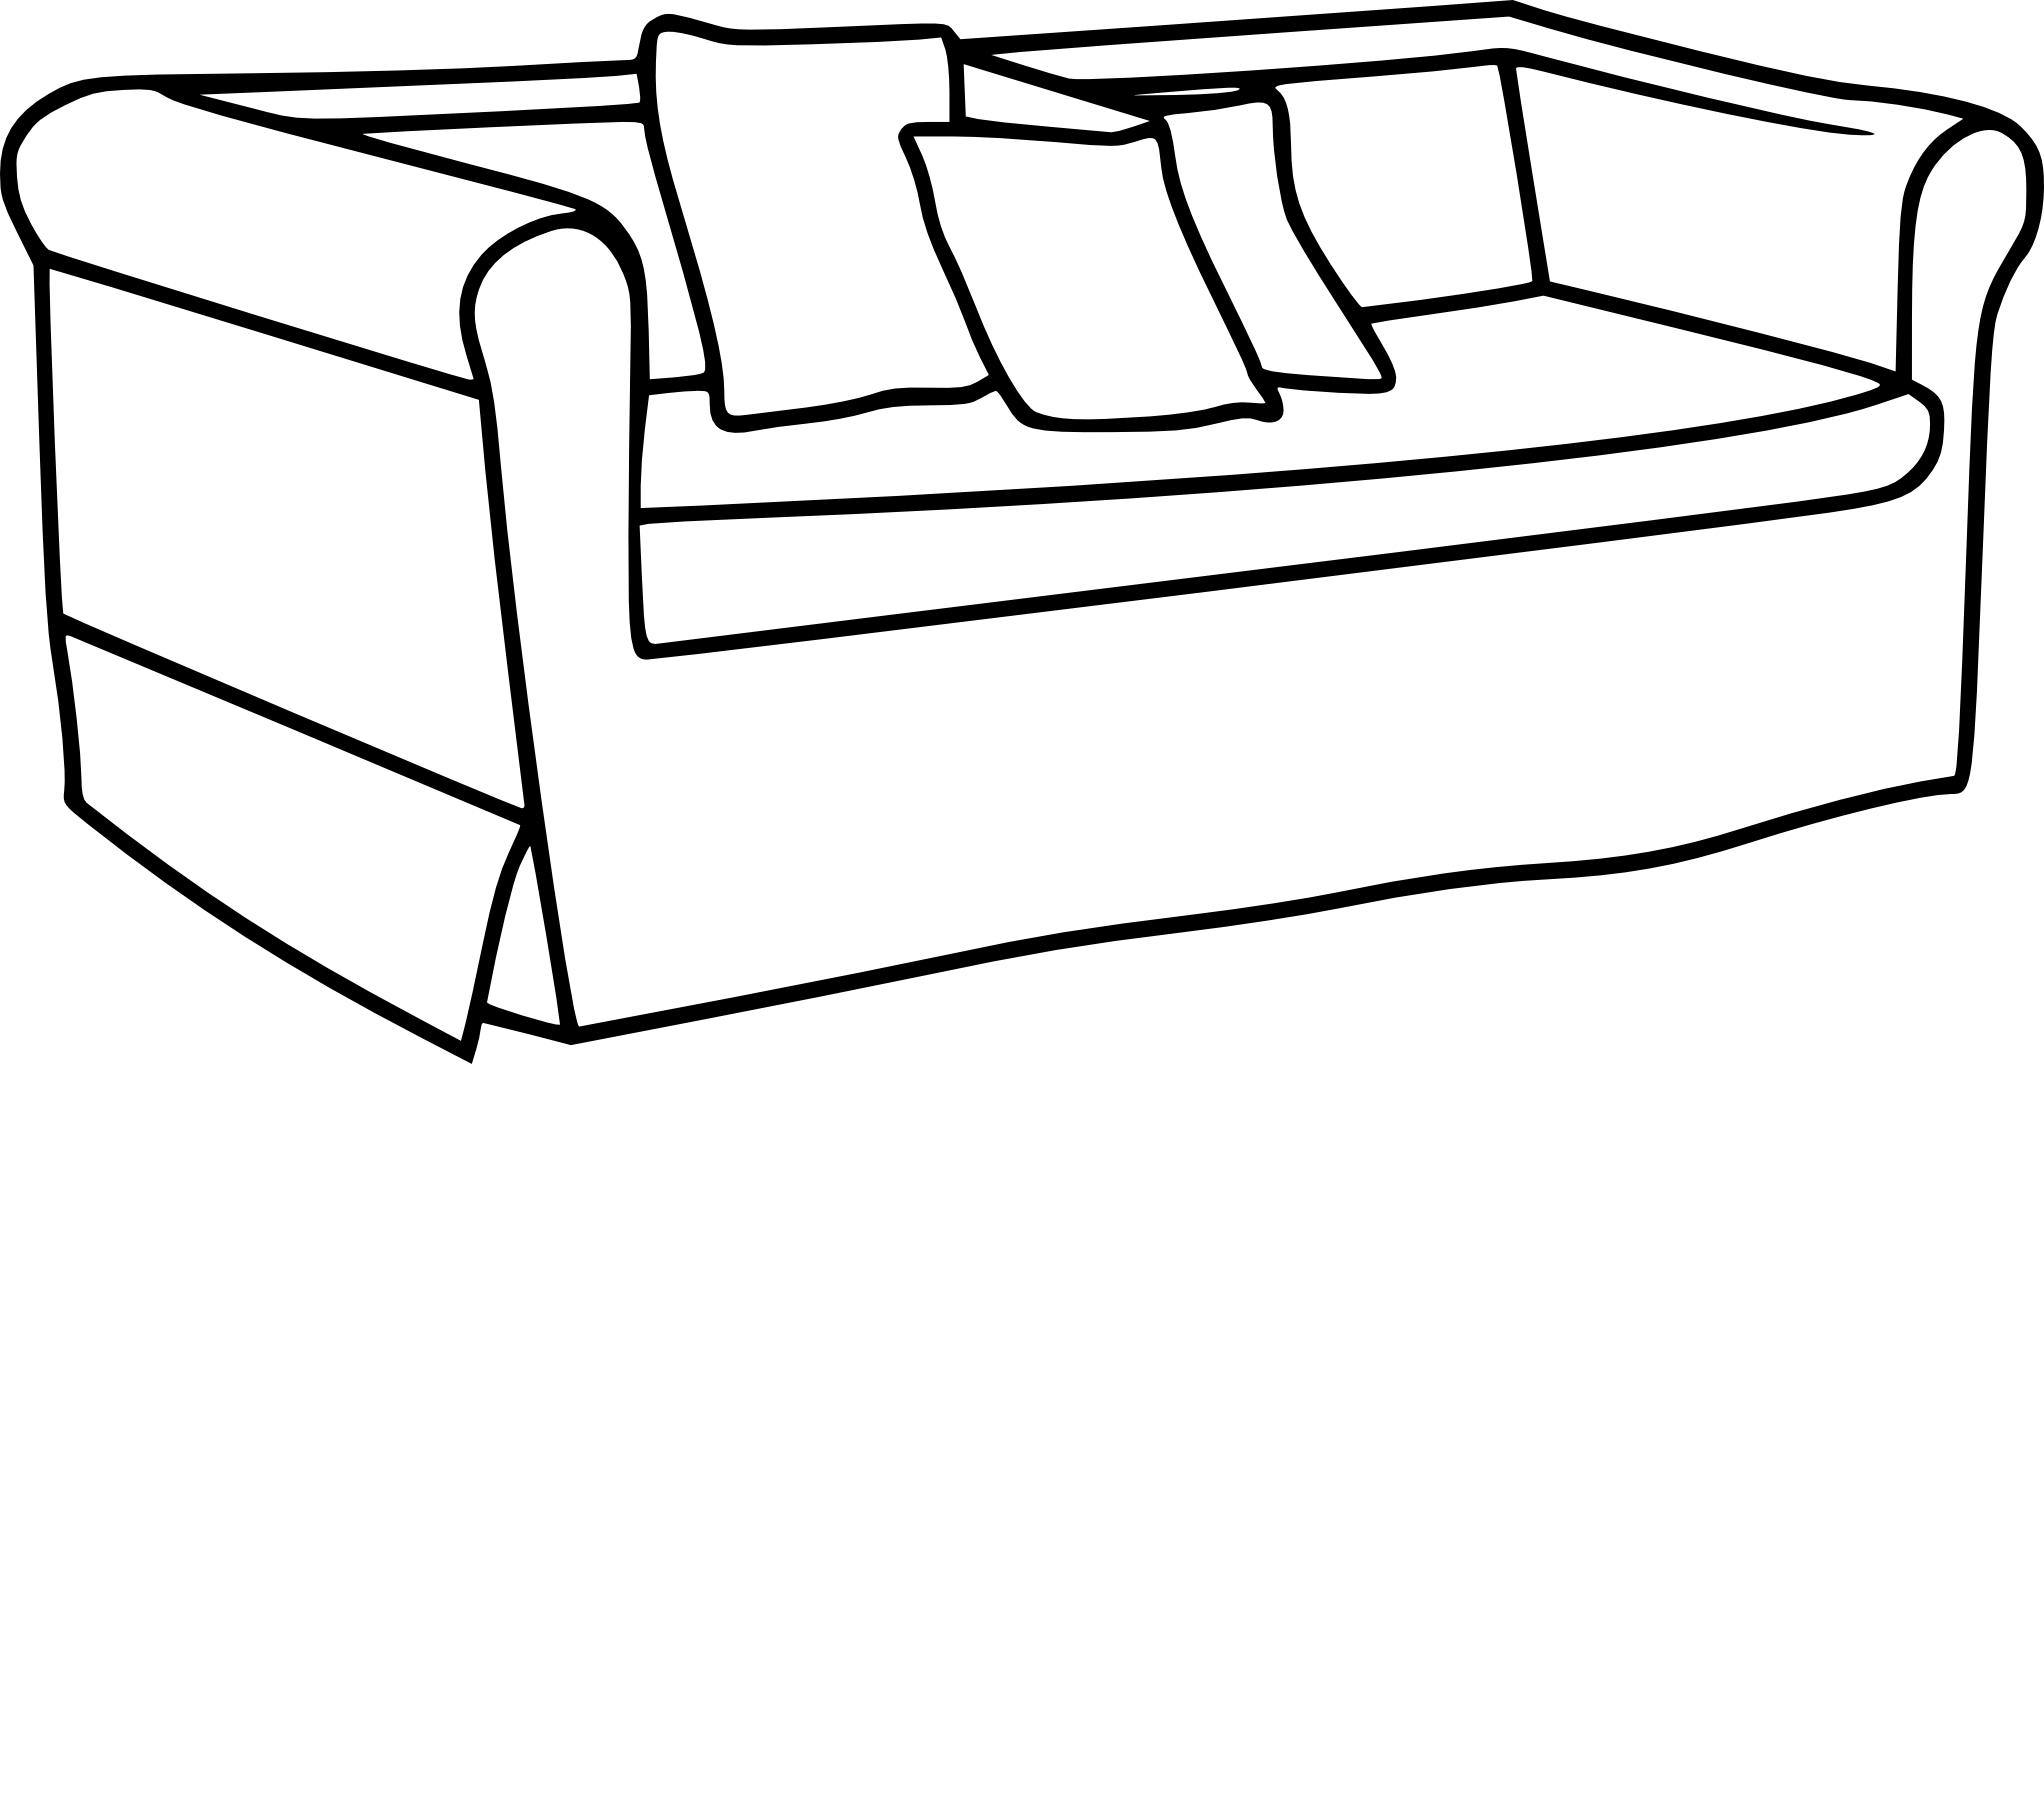 coloriage canap et dessin imprimer. Black Bedroom Furniture Sets. Home Design Ideas